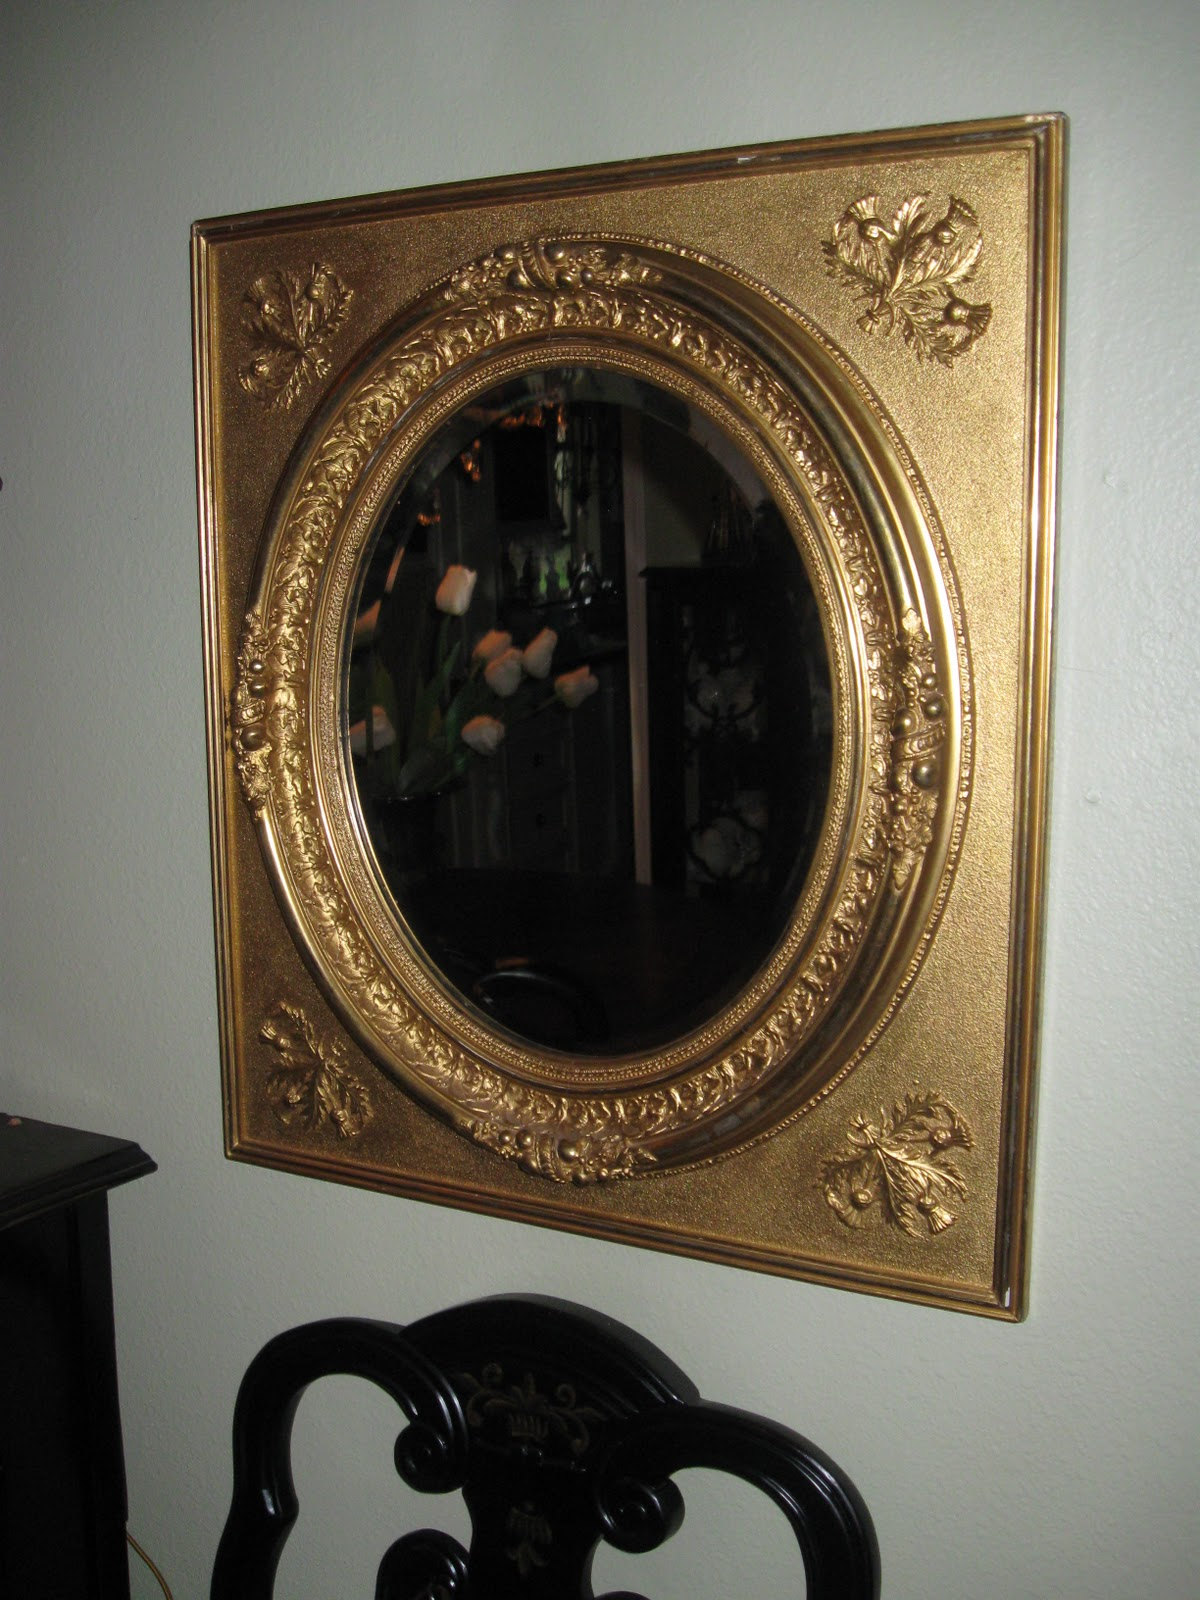 Royal Touch Show Amp Tell Friday Mirror Mirror On The Wall